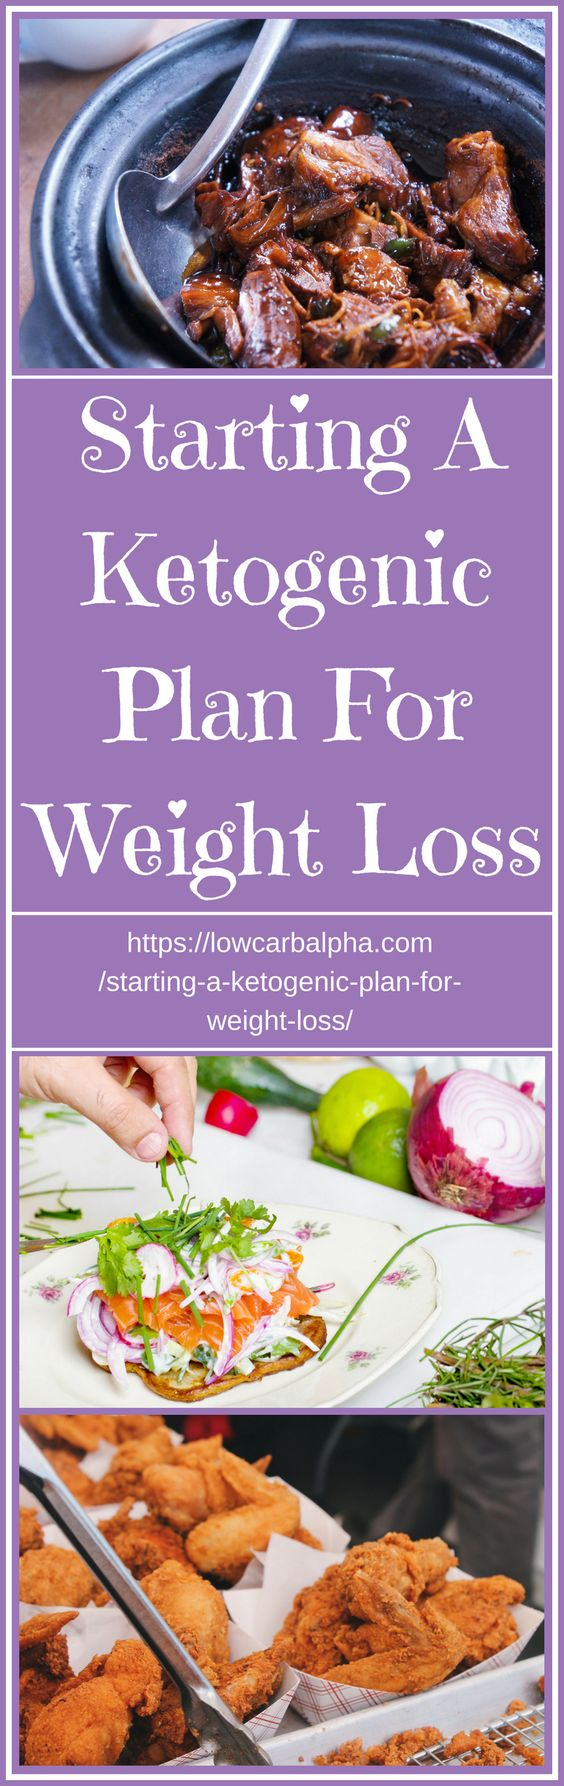 Starting A Ketogenic Plan For Weight Loss https://lowcarbalpha.com/starting-a-ketogenic-plan-for-weight-loss/ What you Need to Know. Best ways to get lean is through a LCHF keto diet plan for weight loss, eat moderate protein, higher fats, and lower carbohydrates. Improve your wellbeing, change metabolic rate. Achieve Ketogenesis with ketone bodies by the breakdown of fatty acids and ketogenic amino acids #lowcarbalpha #lowcarb #lowcarbdiet #ketogenicdiet #lowcarbhighfat #fatloss